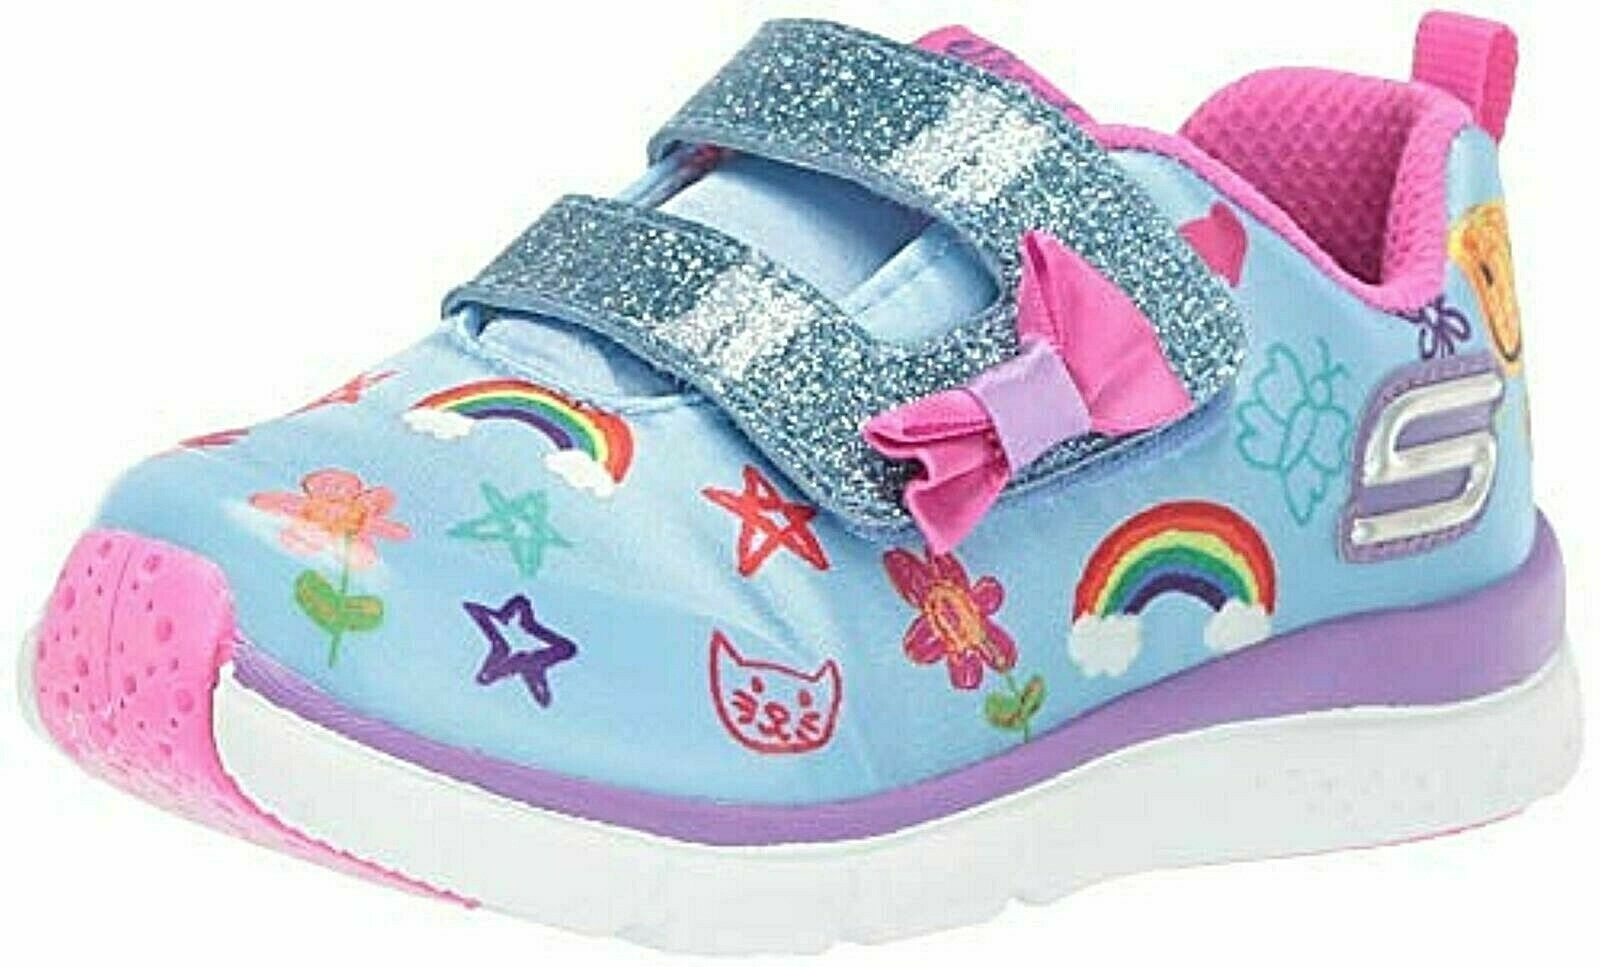 Primary image for Skechers Kids Girls' Jump Lites Sneaker, Blue/Multi, 7 Medium US Toddler